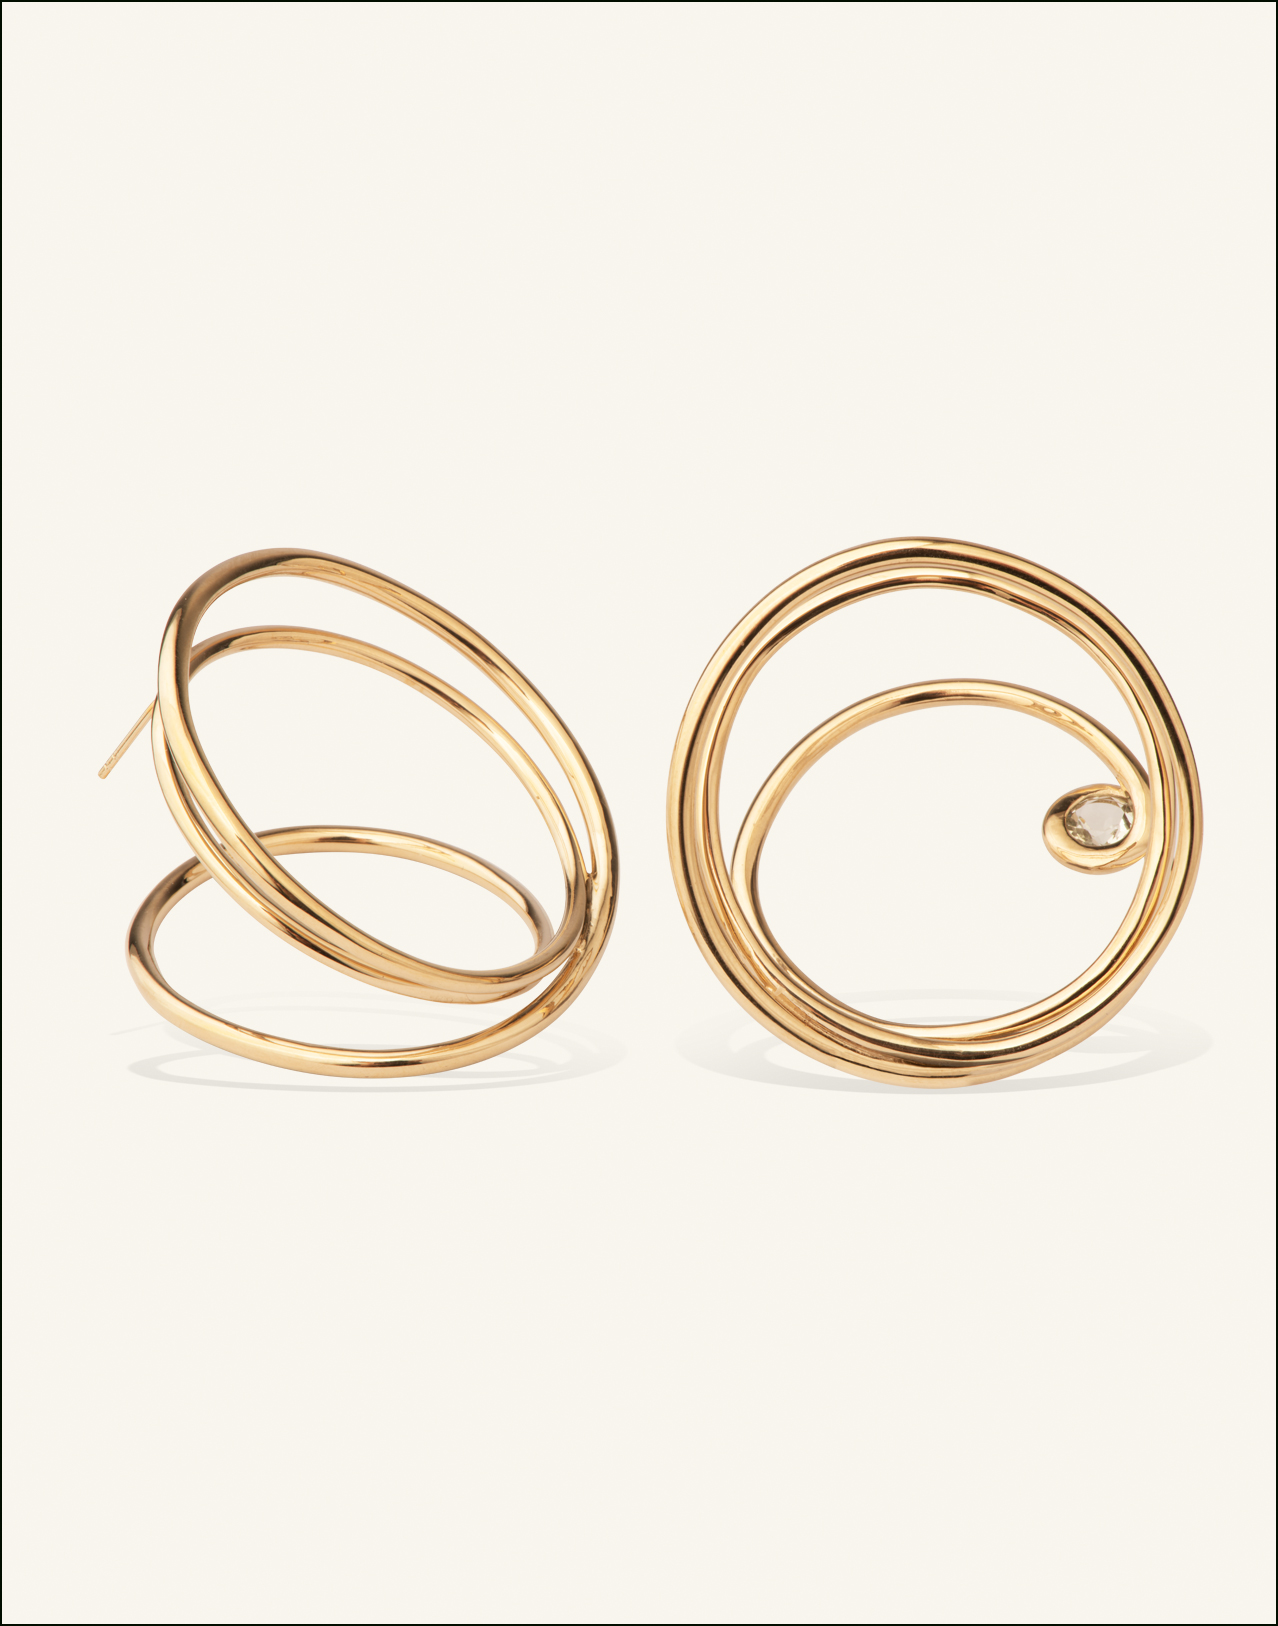 Completedworks-Earrings-Gold-Vermeil-The-Idea-of-Order-1-1.jpg